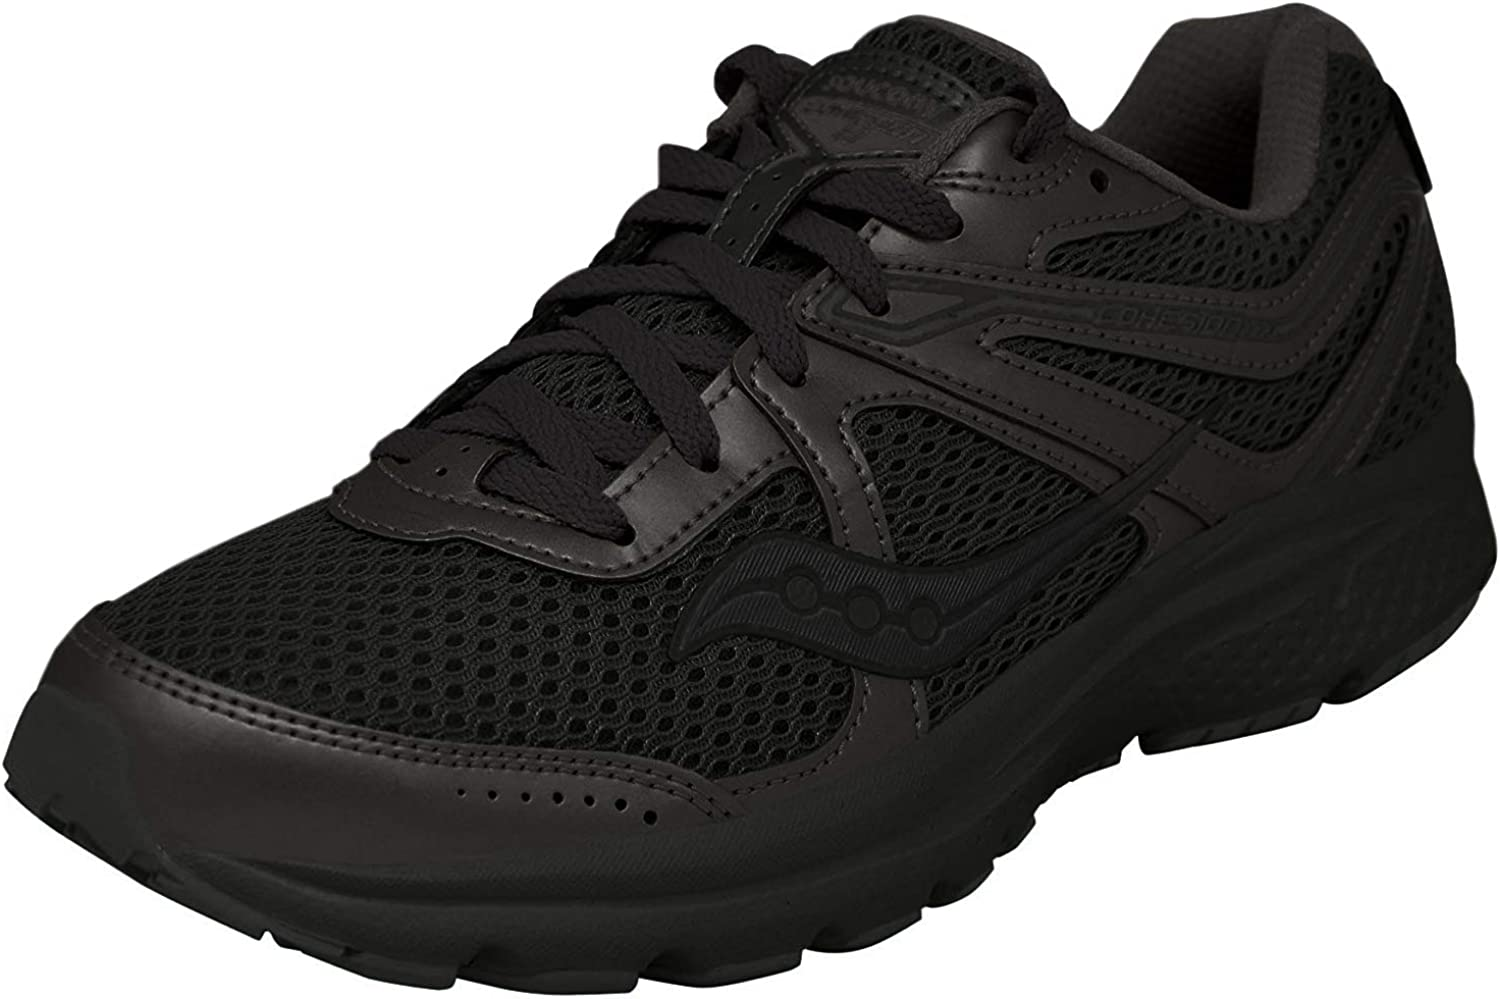 Cohesion 11 Running Shoe